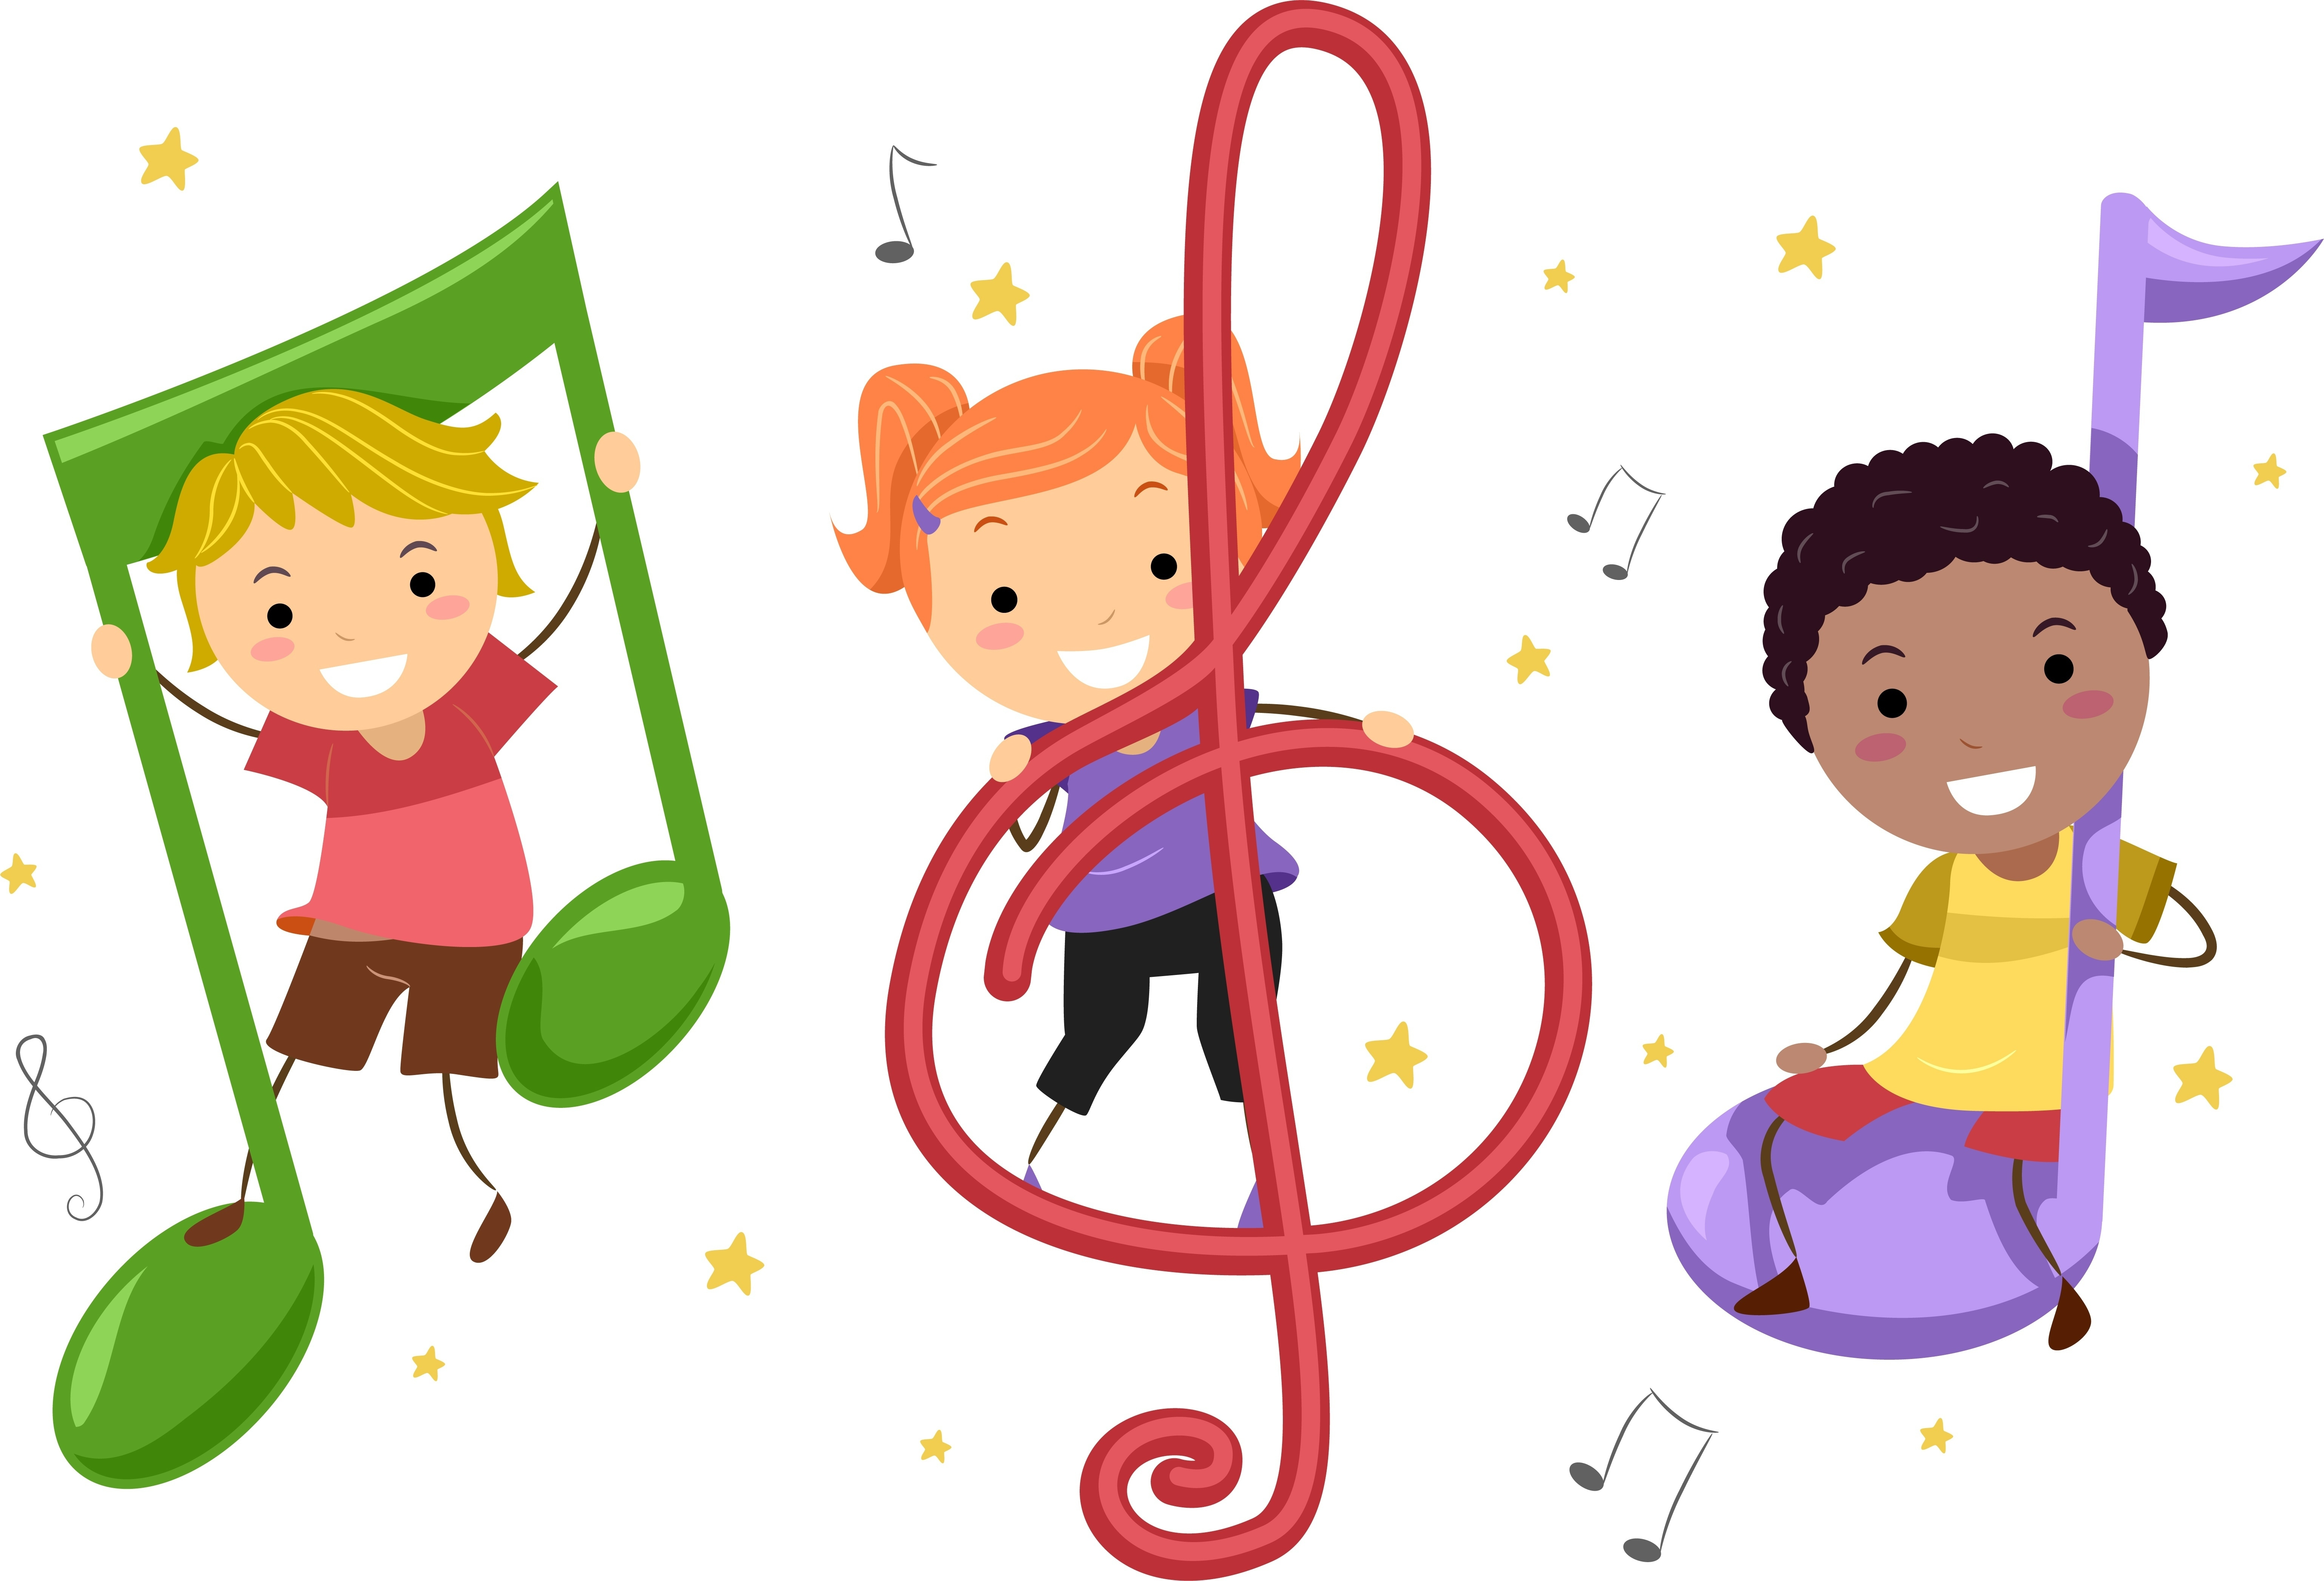 Children Dancing Clipart at GetDrawings.com.